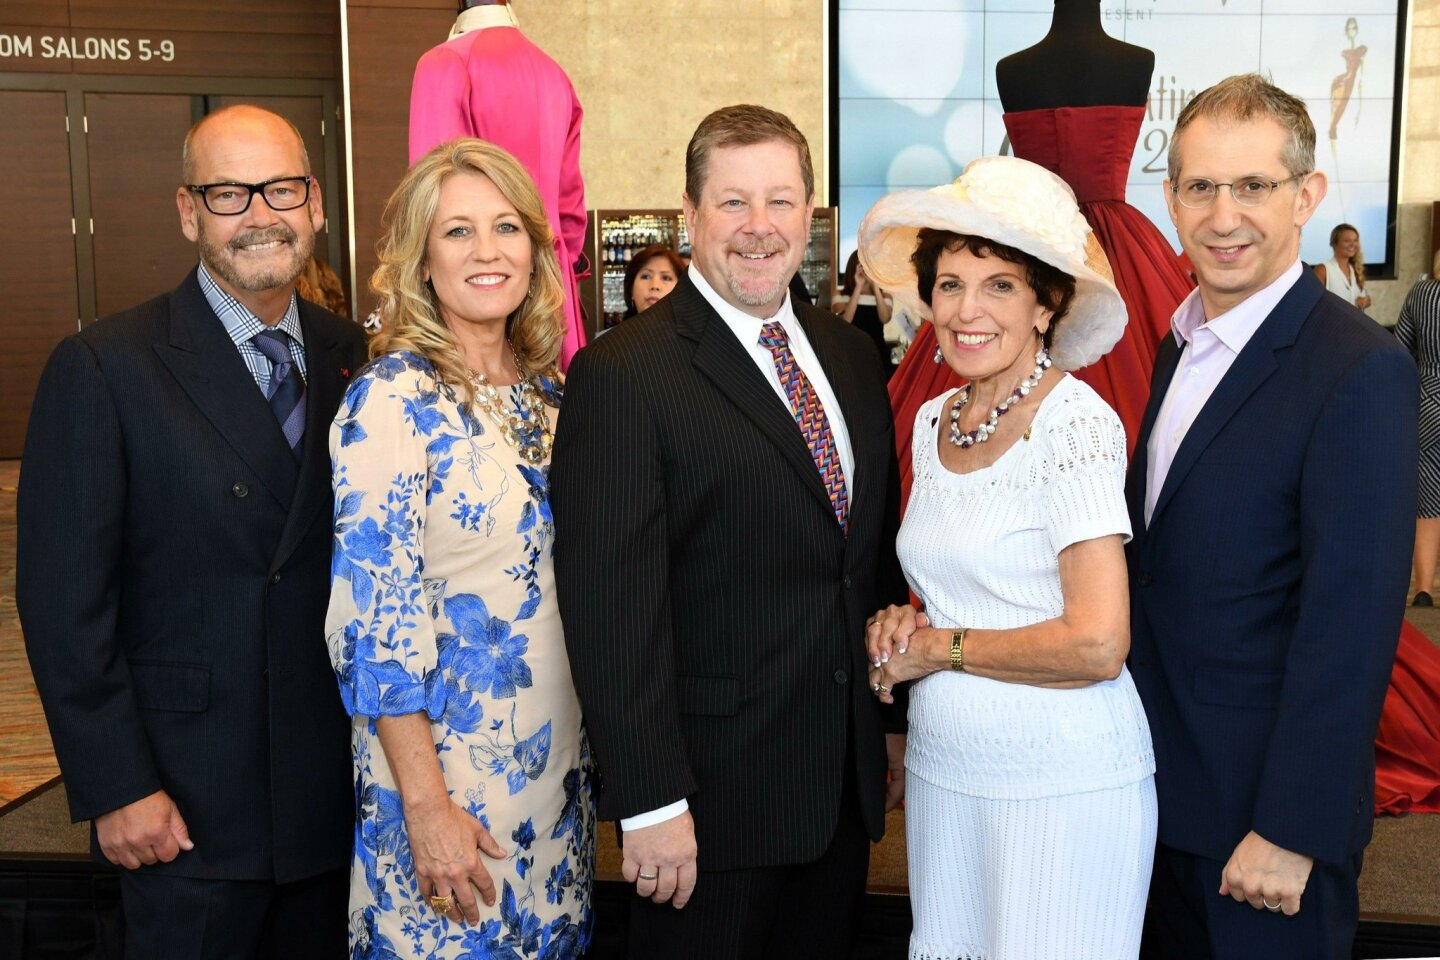 Thomas Melody (Neiman Marcus VP/GM), Linda Van Vark (show chair), Michael G. Murphy (Globe managing director), Angie DeCaro (Globe Guilders president), Barry Edelstein (Old Globe artistic director)